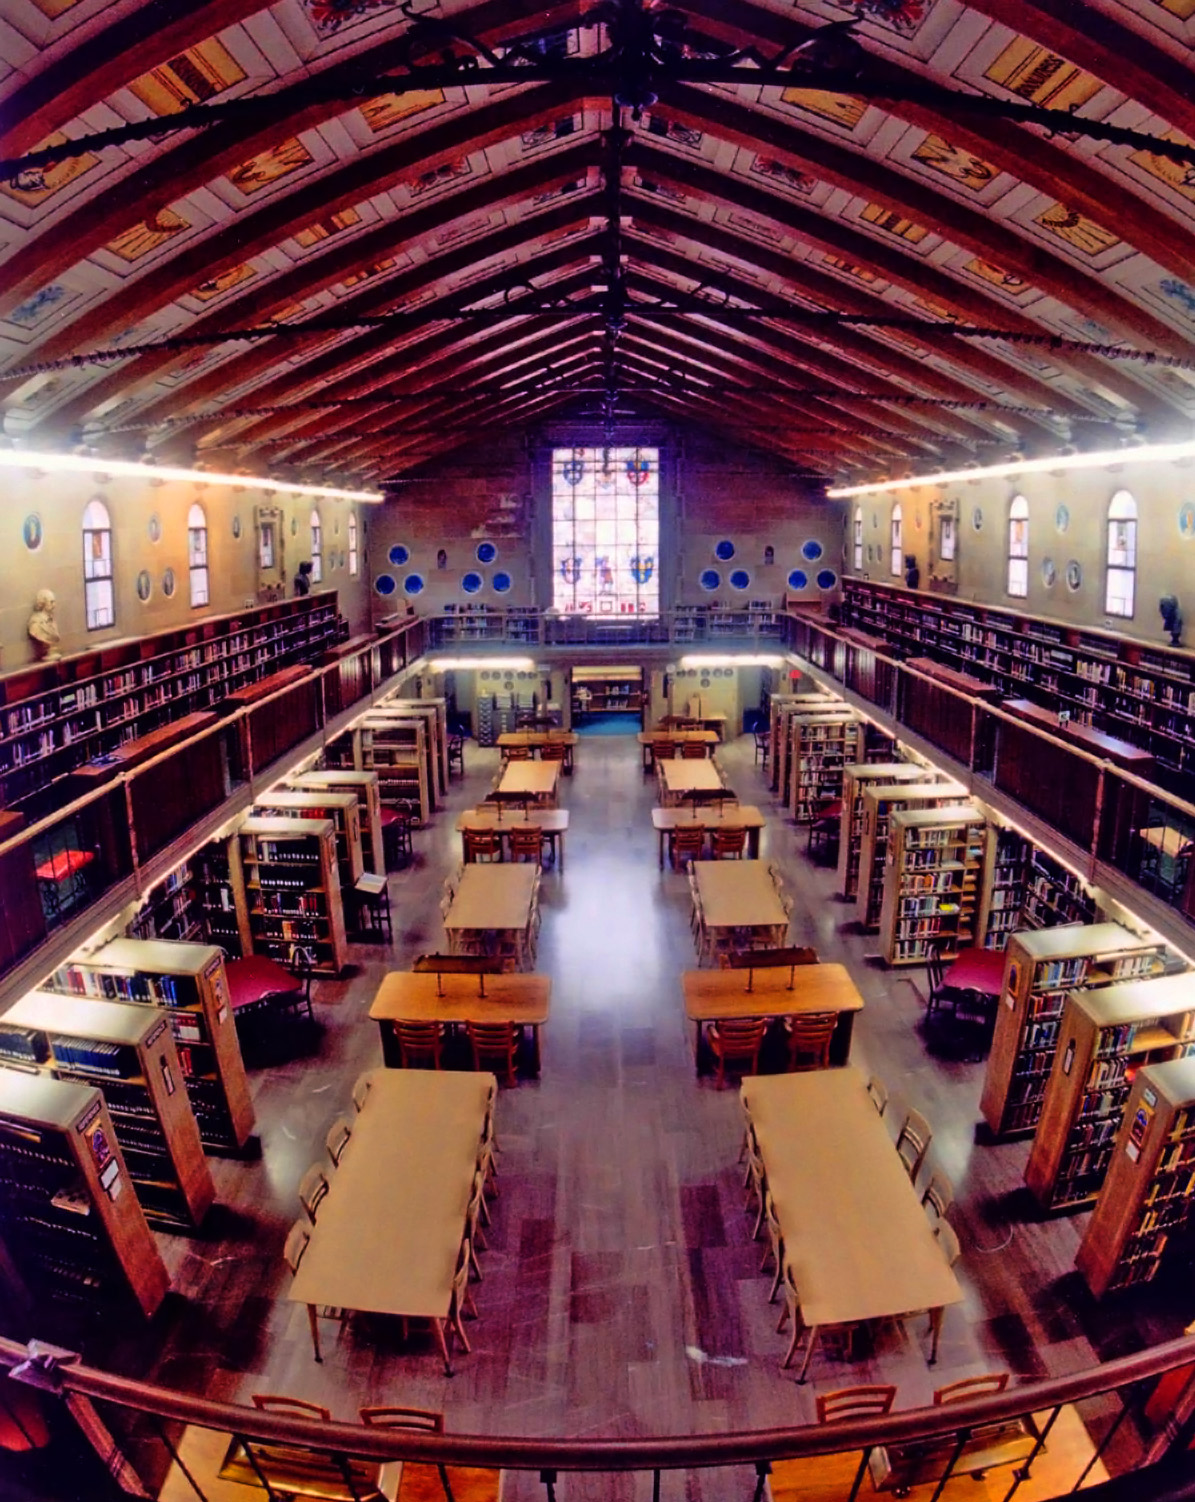 Duns Scotus Library